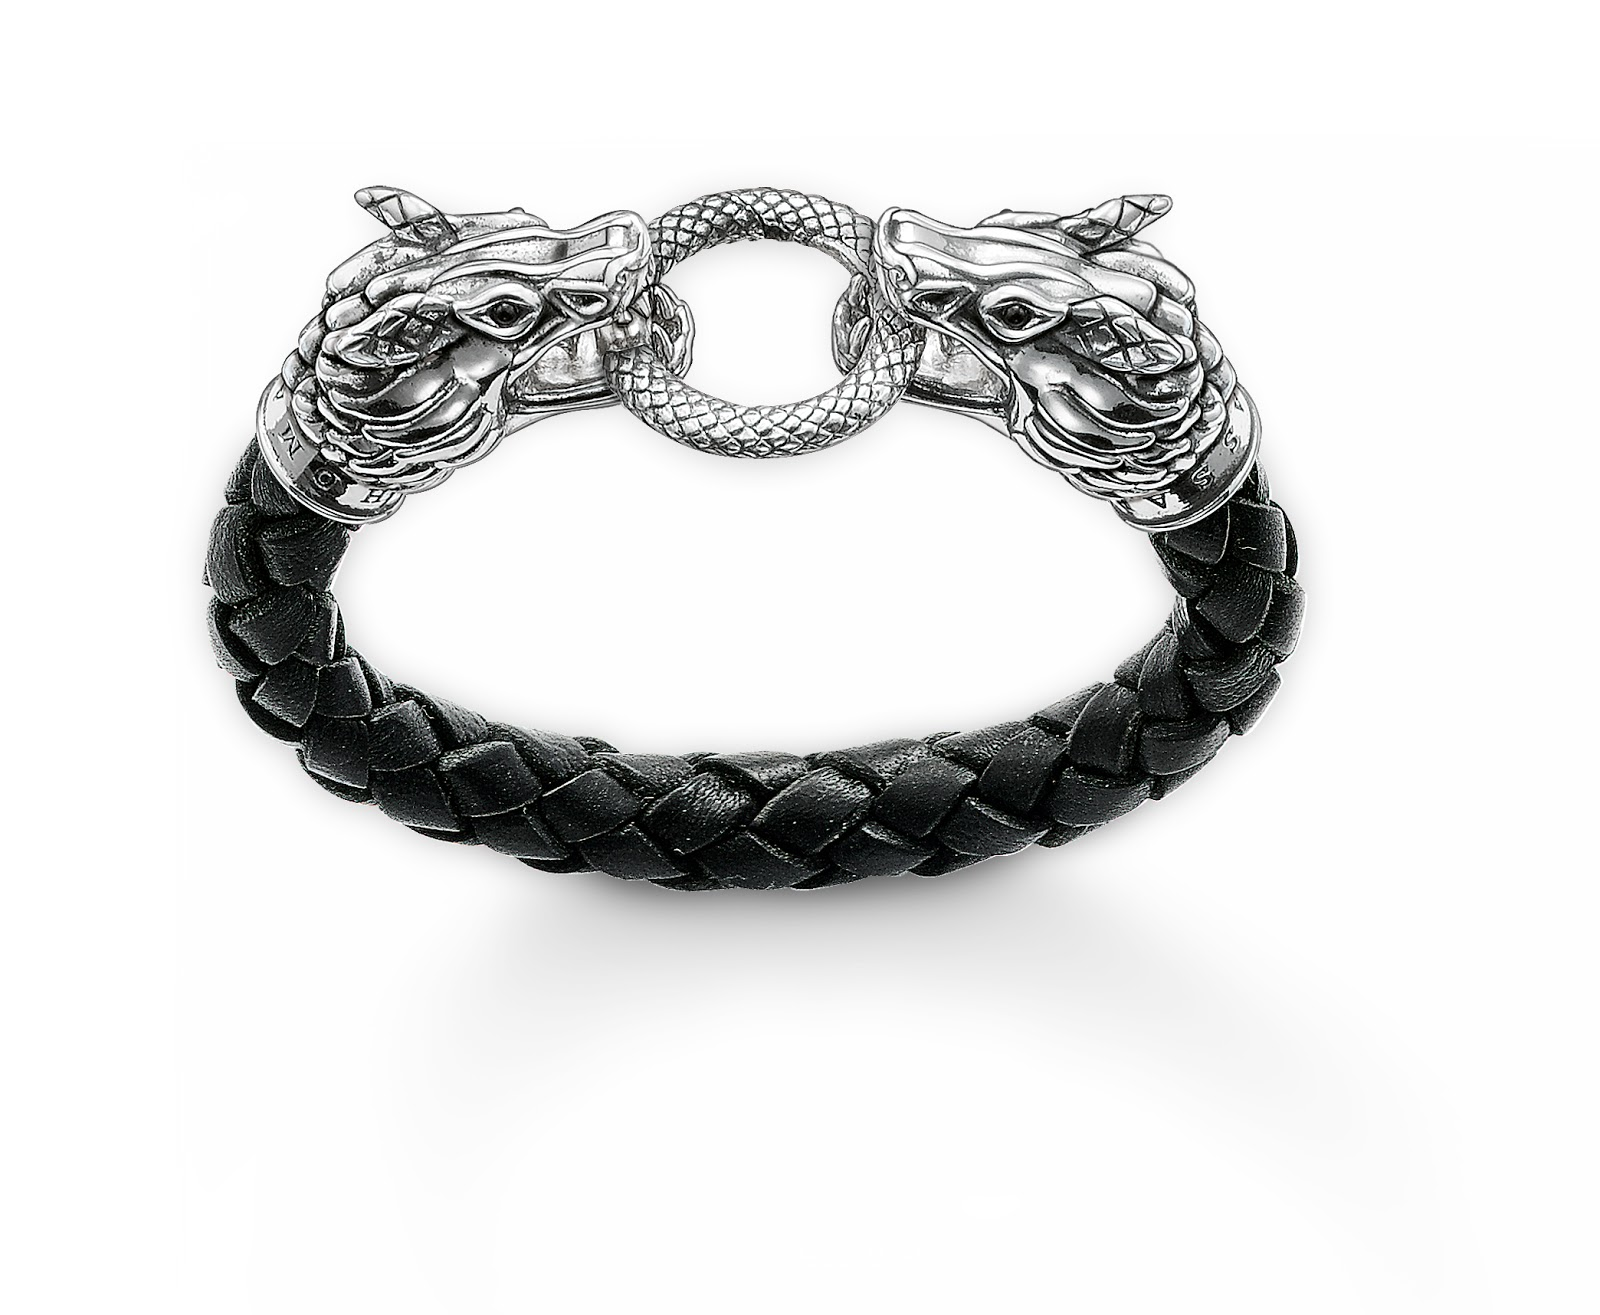 The Dragon Bracelet In Black Leather, Sterling Silver And Blackened Onyx  Price £298